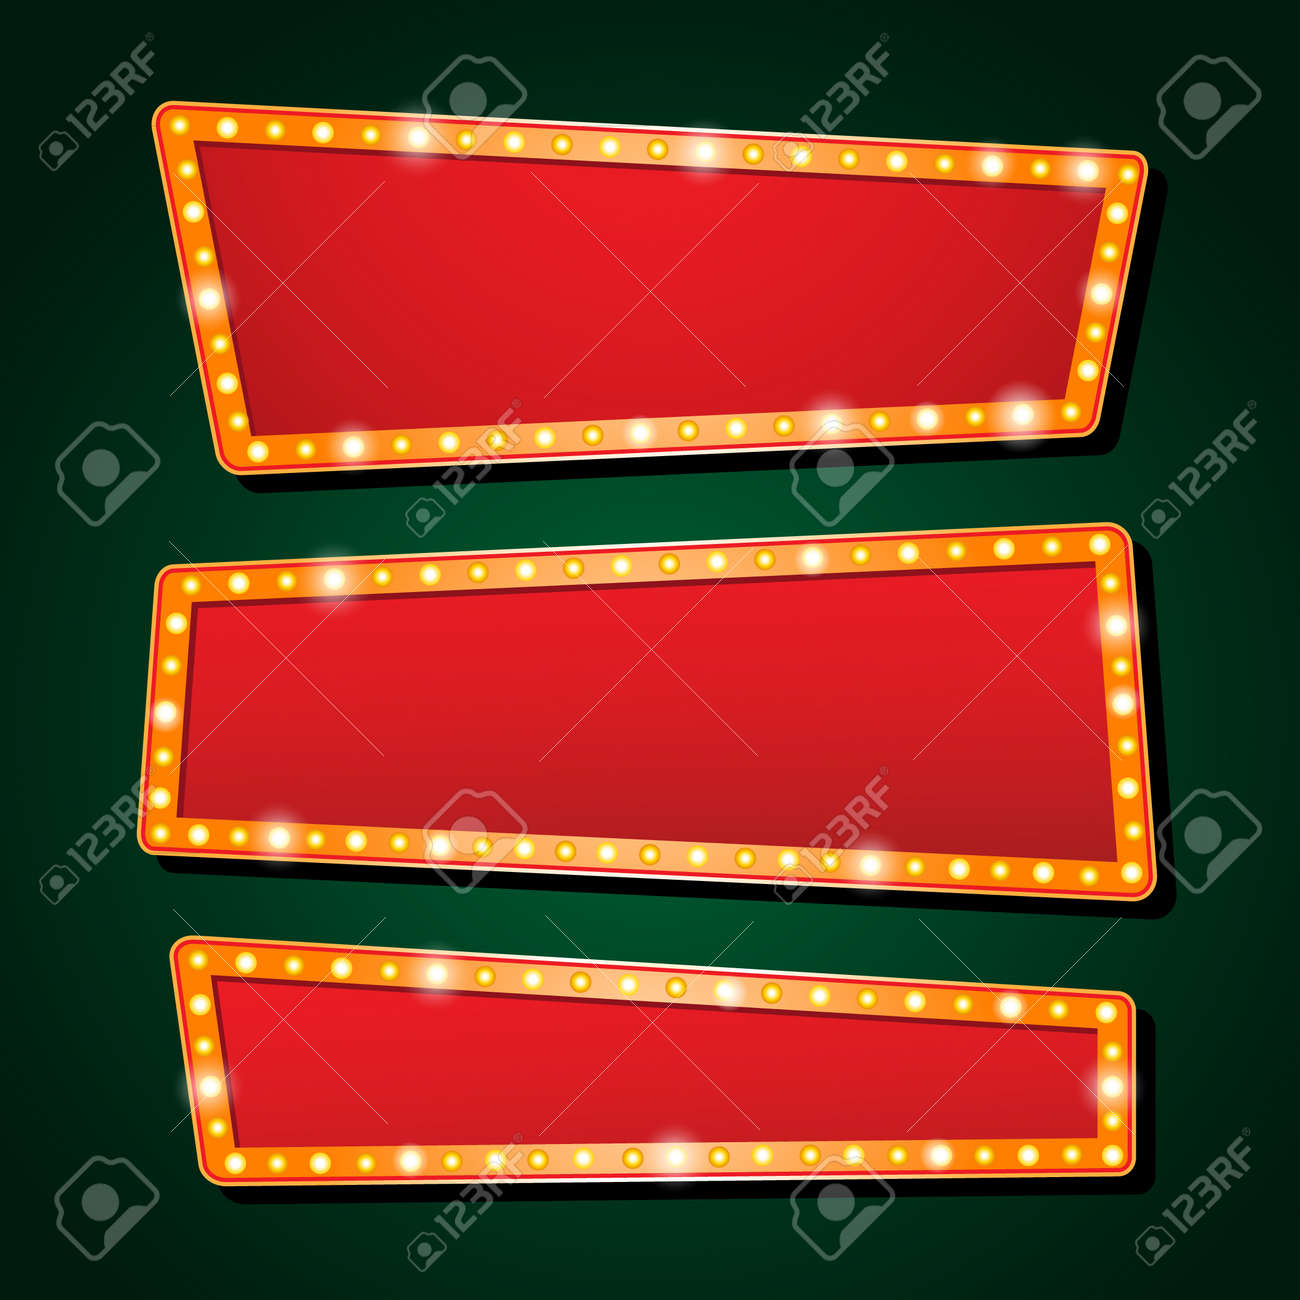 orange neon lamp letters font show cinema and theater - 52586095